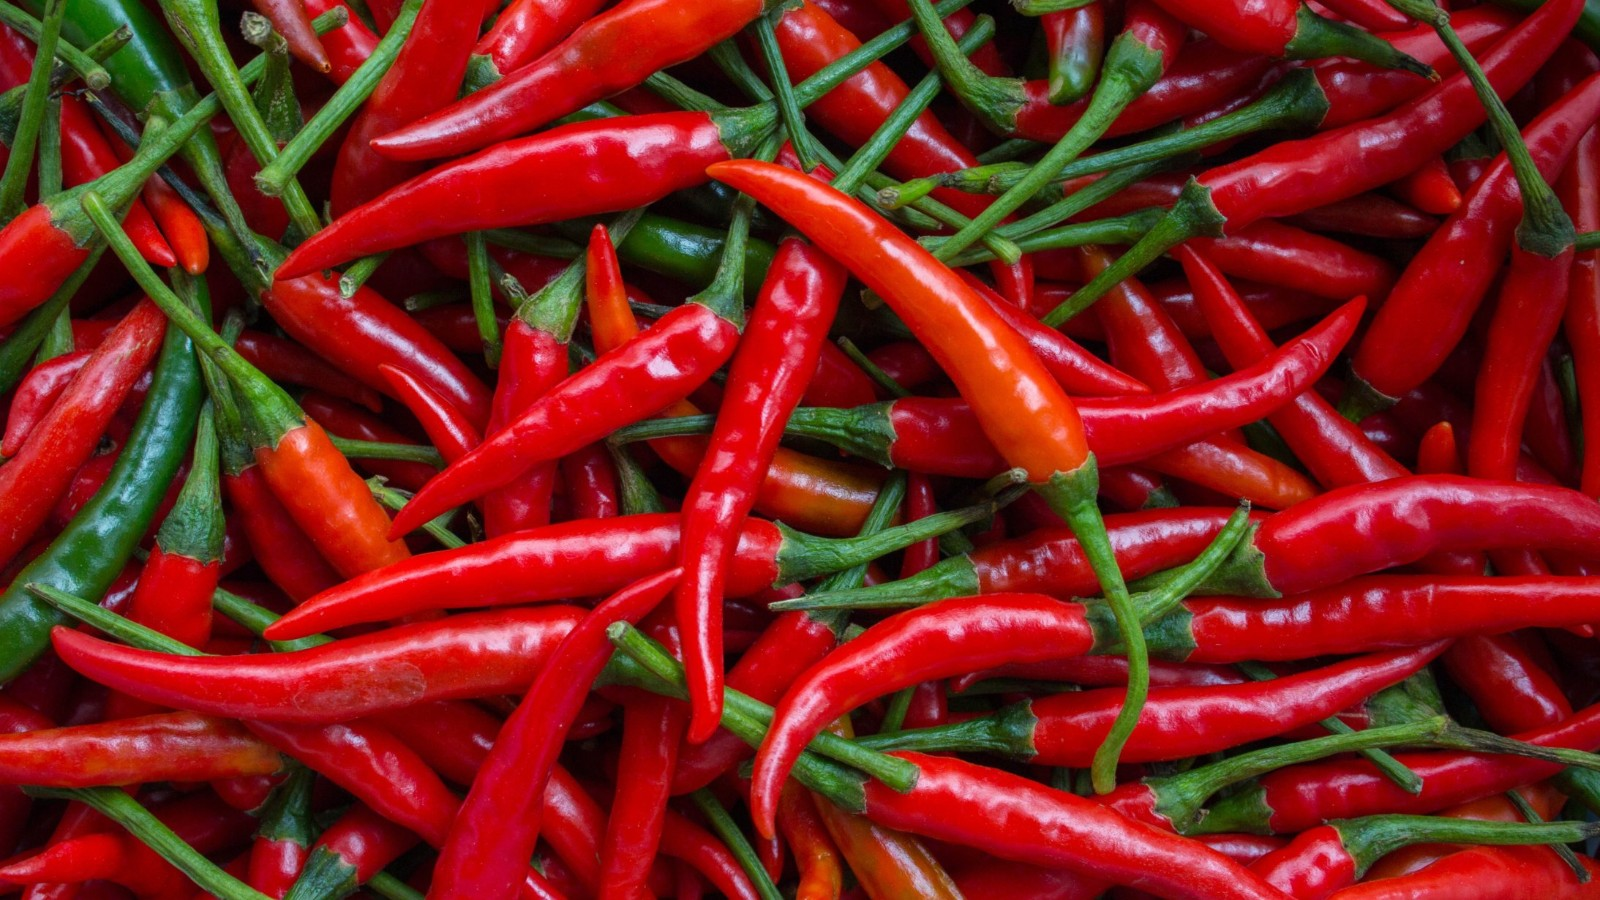 Cuisine Spicy Spicy Foods May Help You Live Longer Says A New Study Cnn